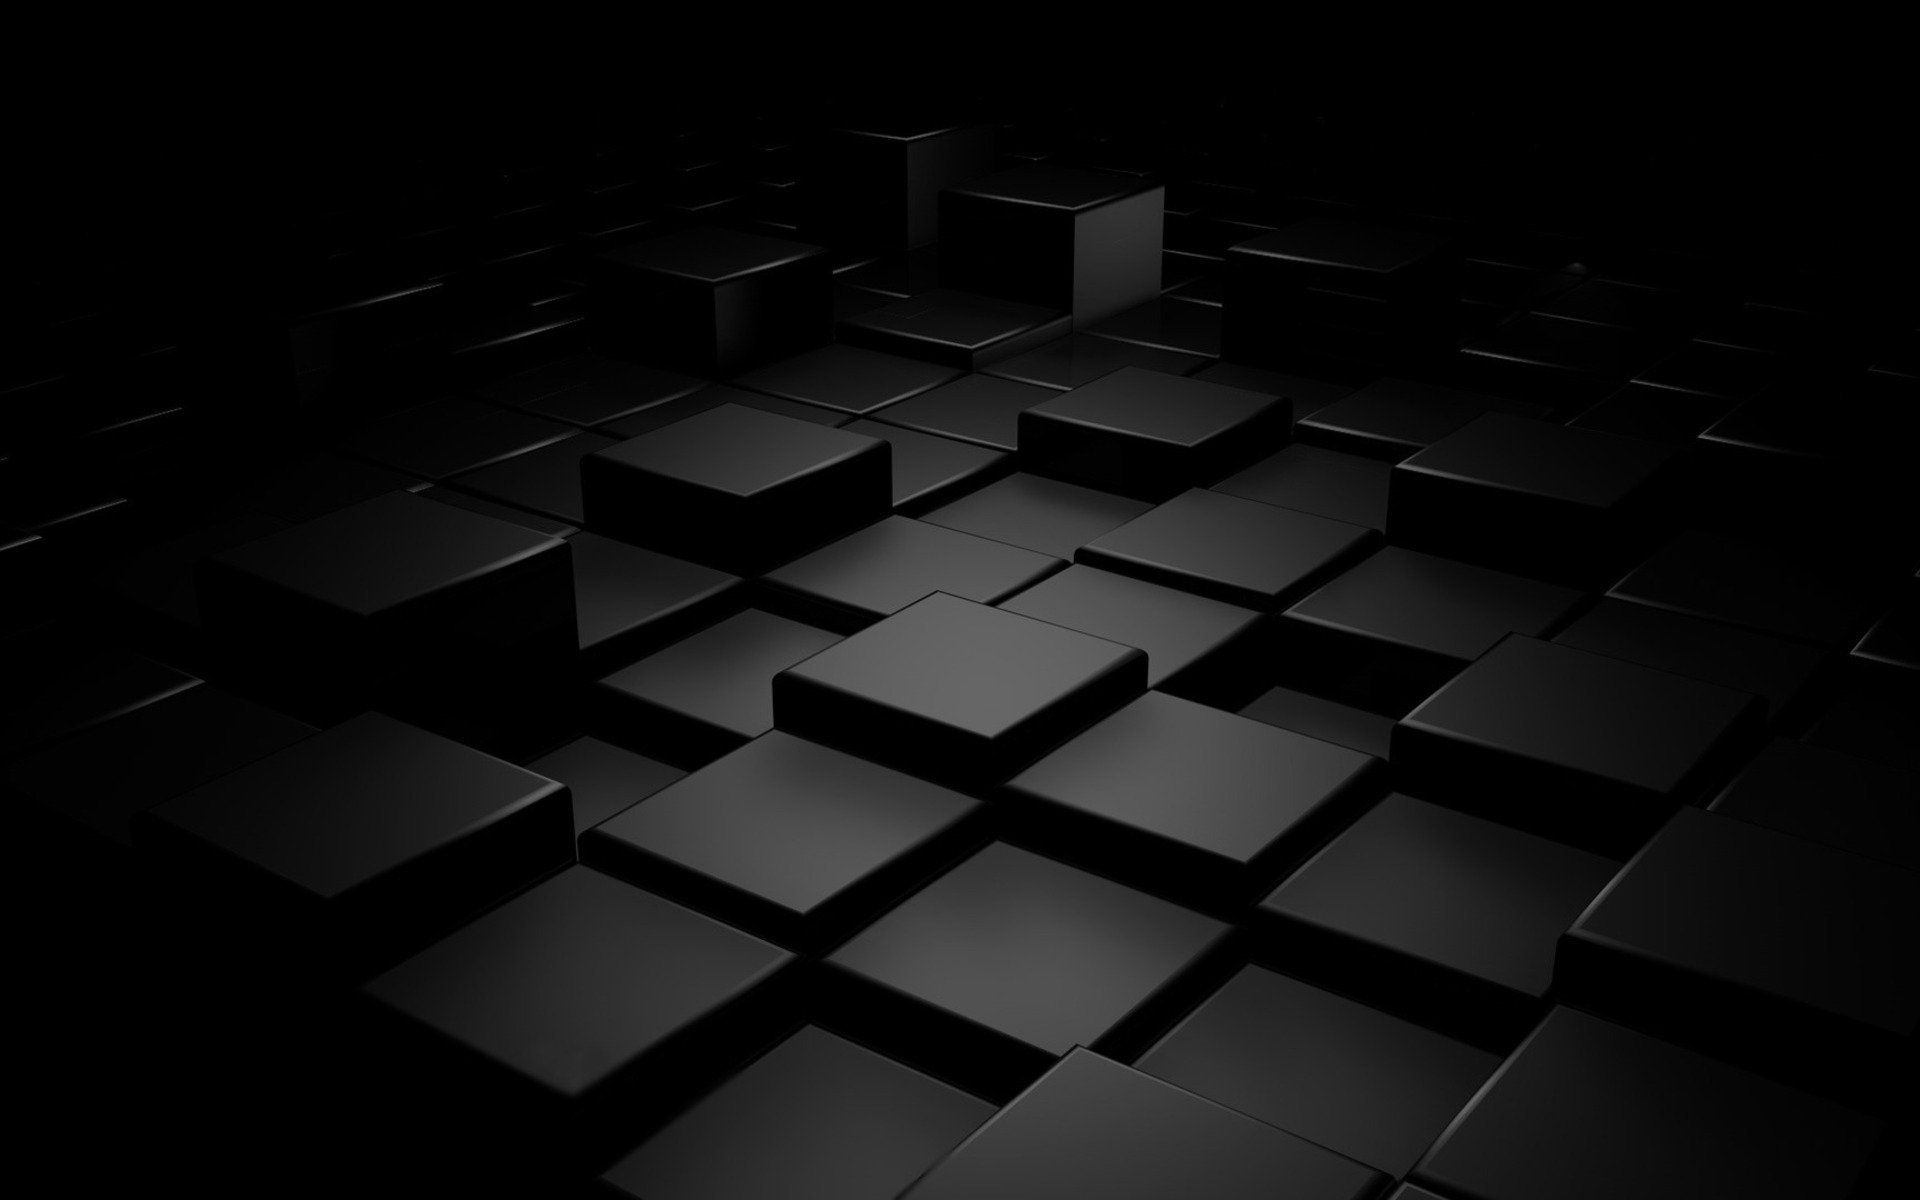 plain black 3d 3 desktop wallpaper hdblackwallpaper com